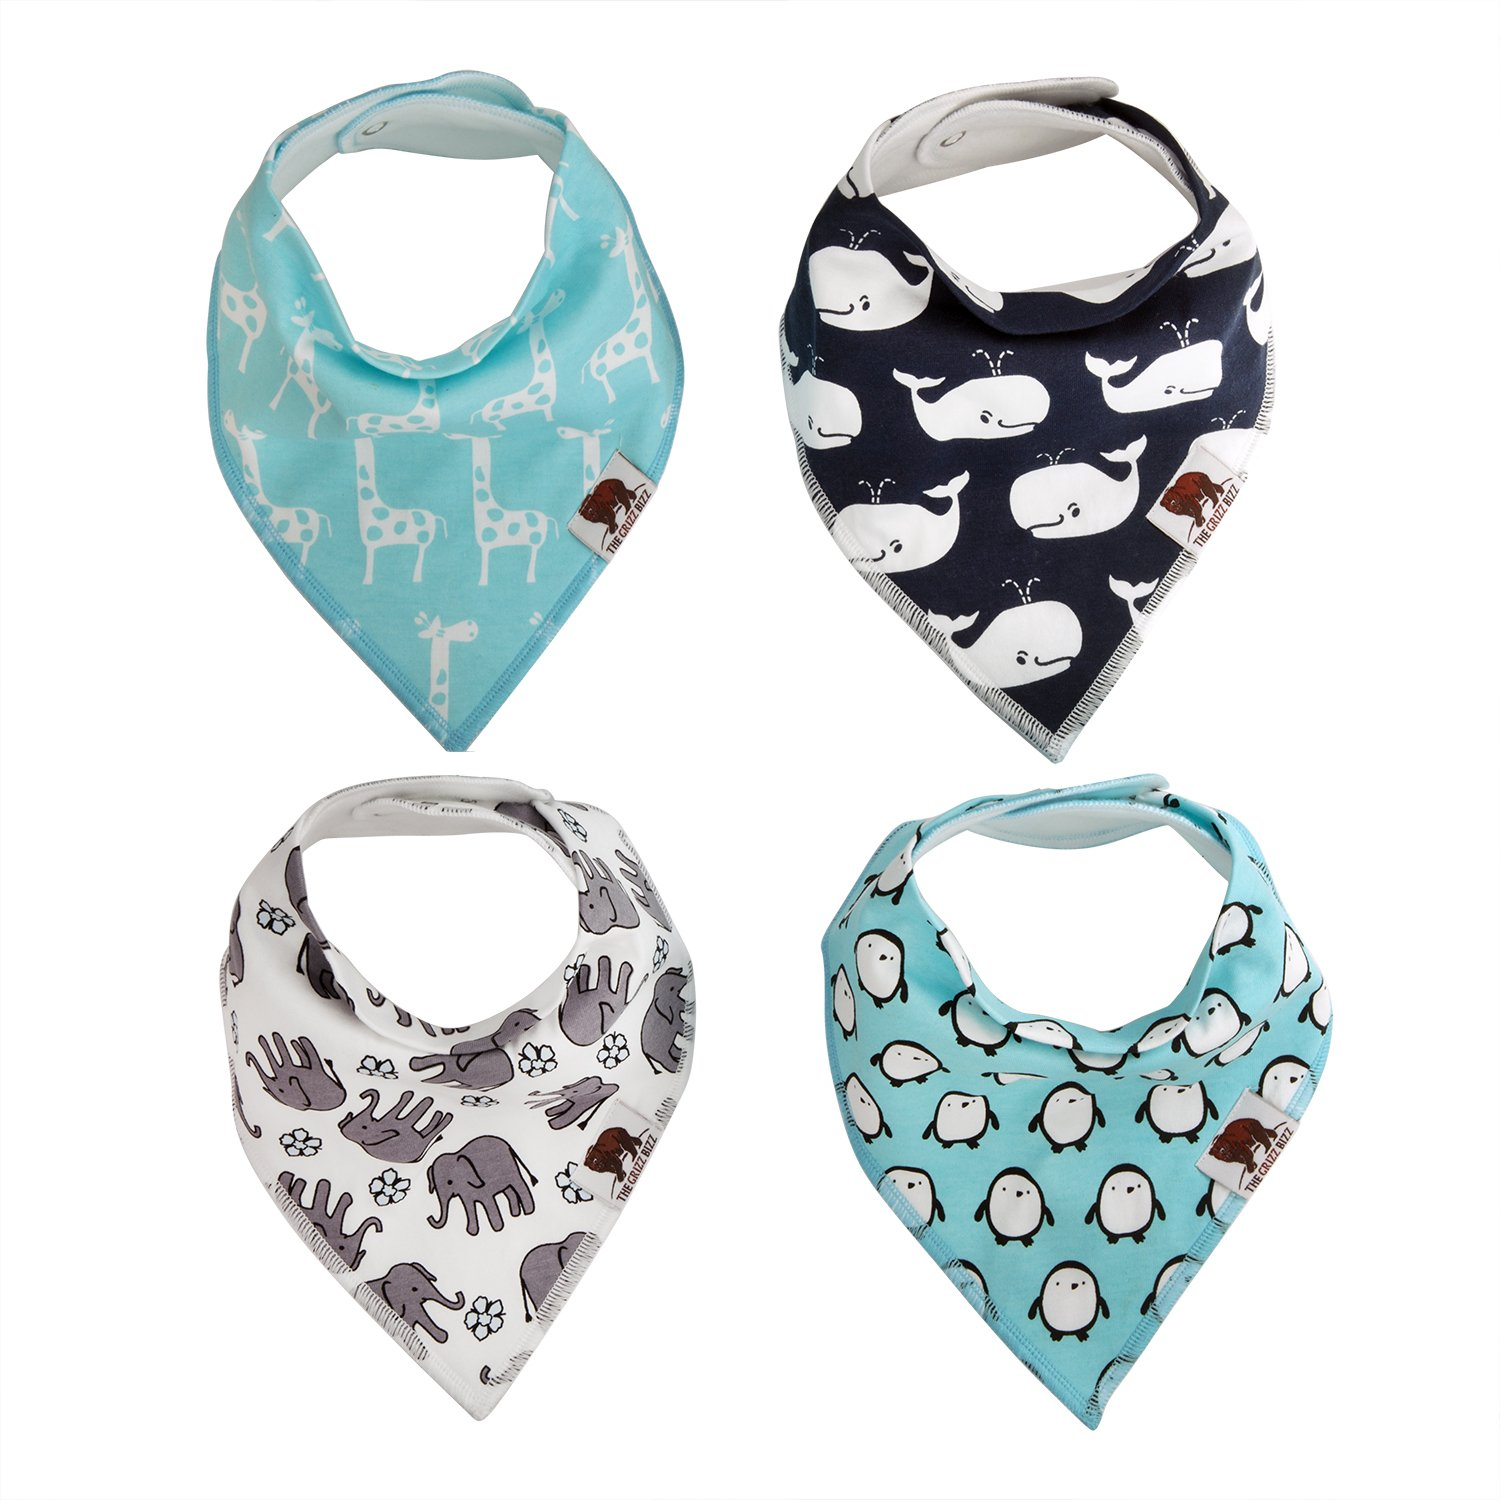 The Grizz Bizz Baby Organic Cotton Drool Bibs, (Pack of 4) - Neutral Animal